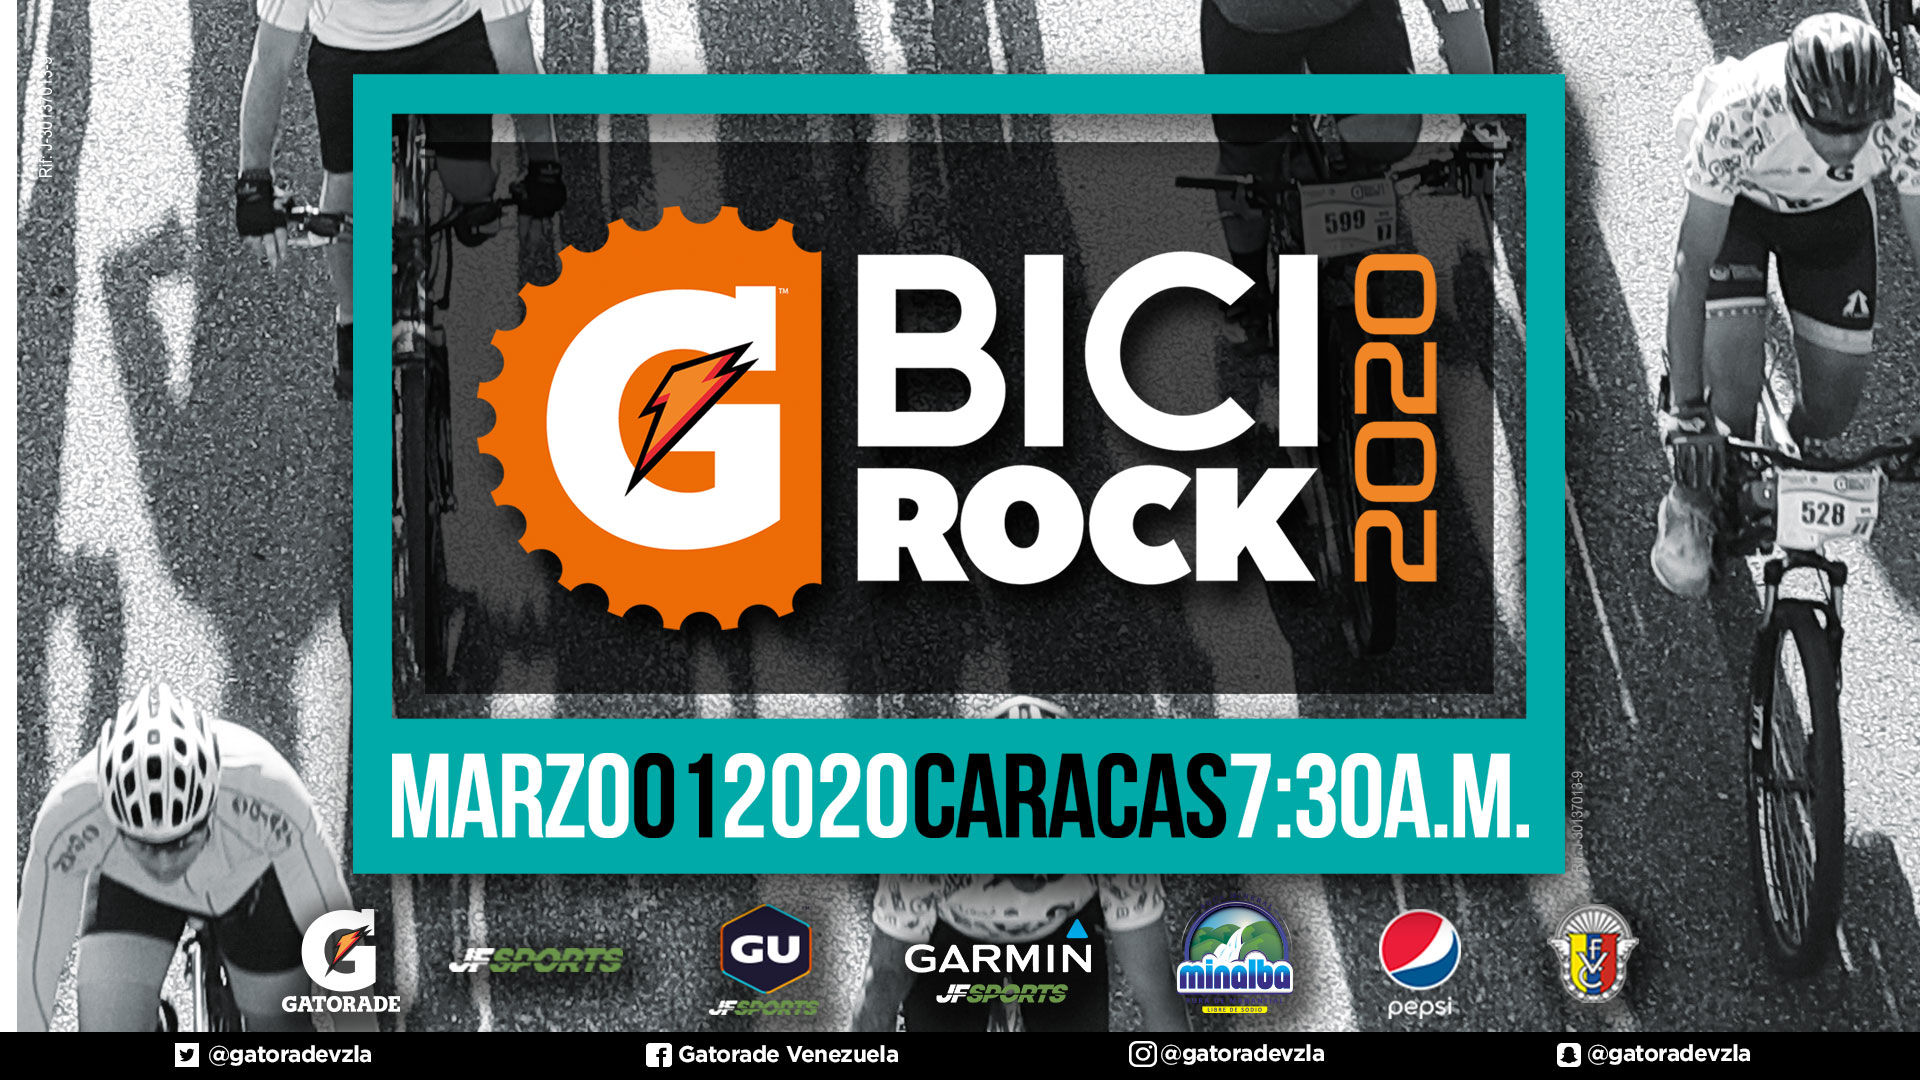 VI GATORADE BICI ROCK